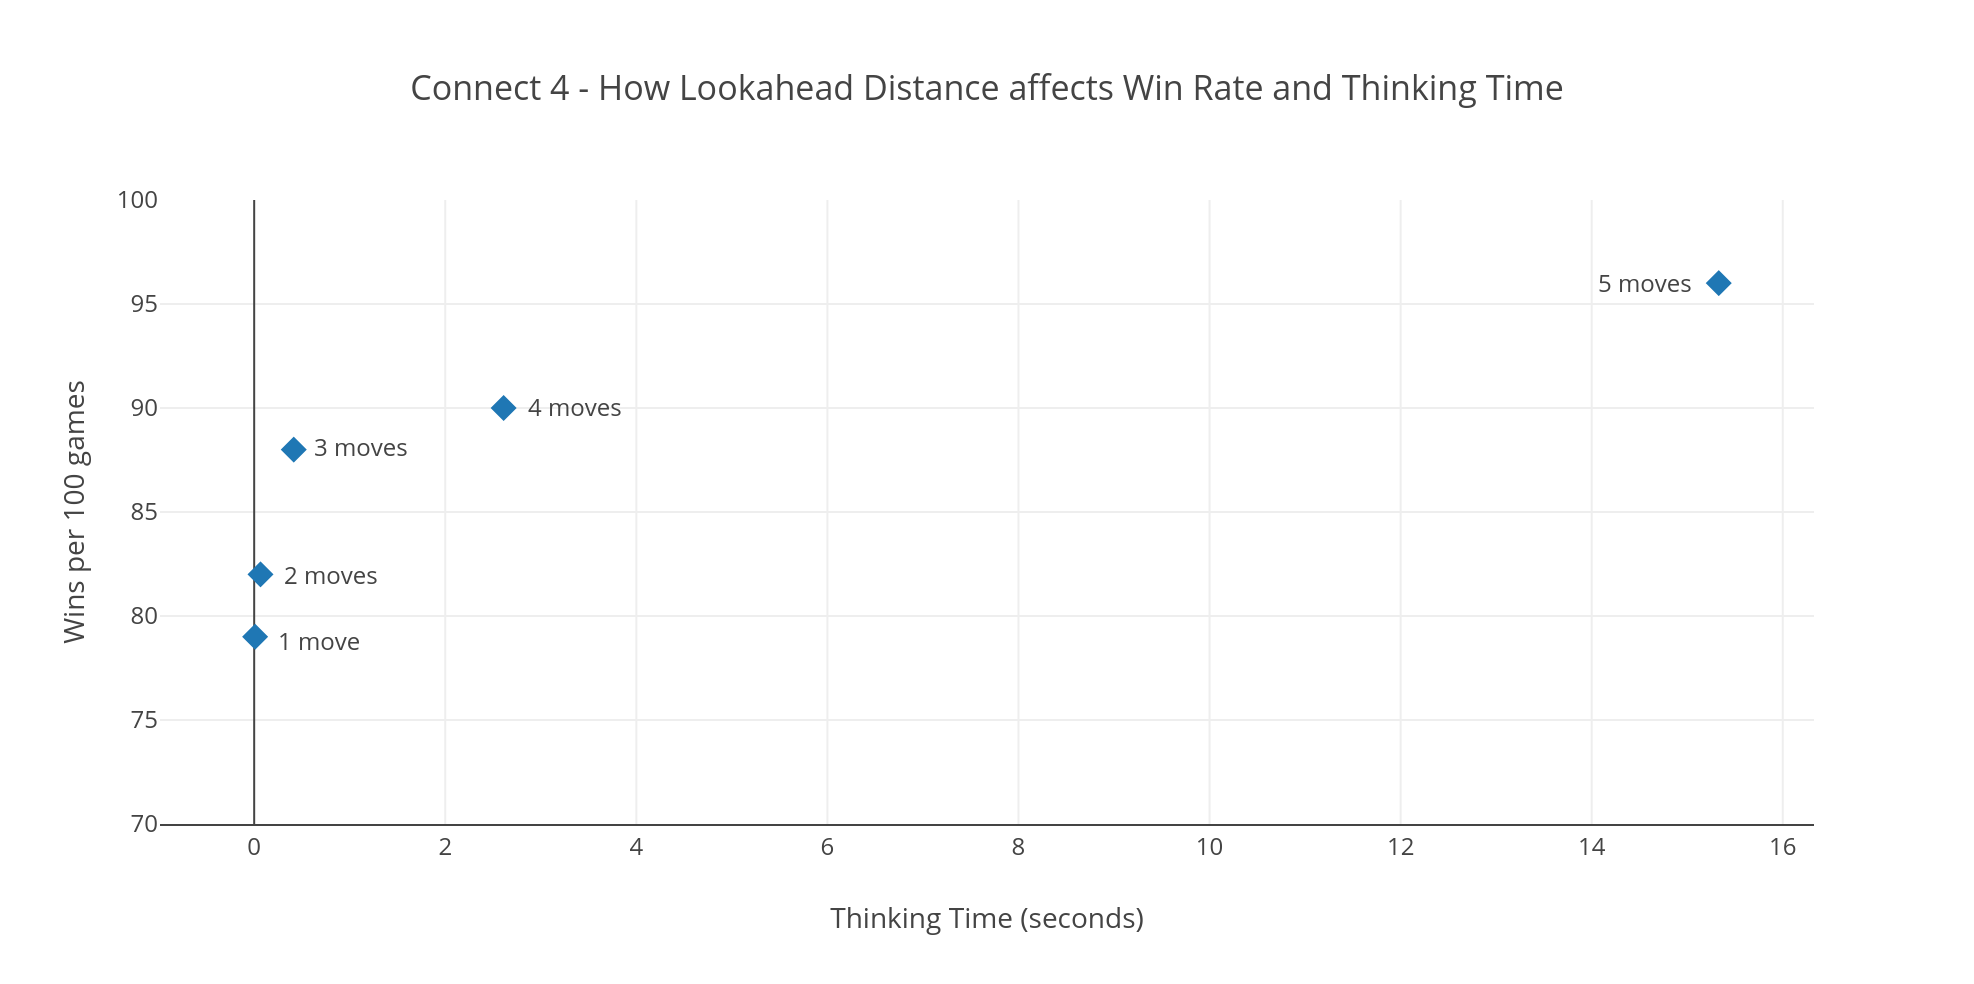 Graph showing a how Lookahead Distance affects Win Rate and Thinking Time in a game of Connect 4